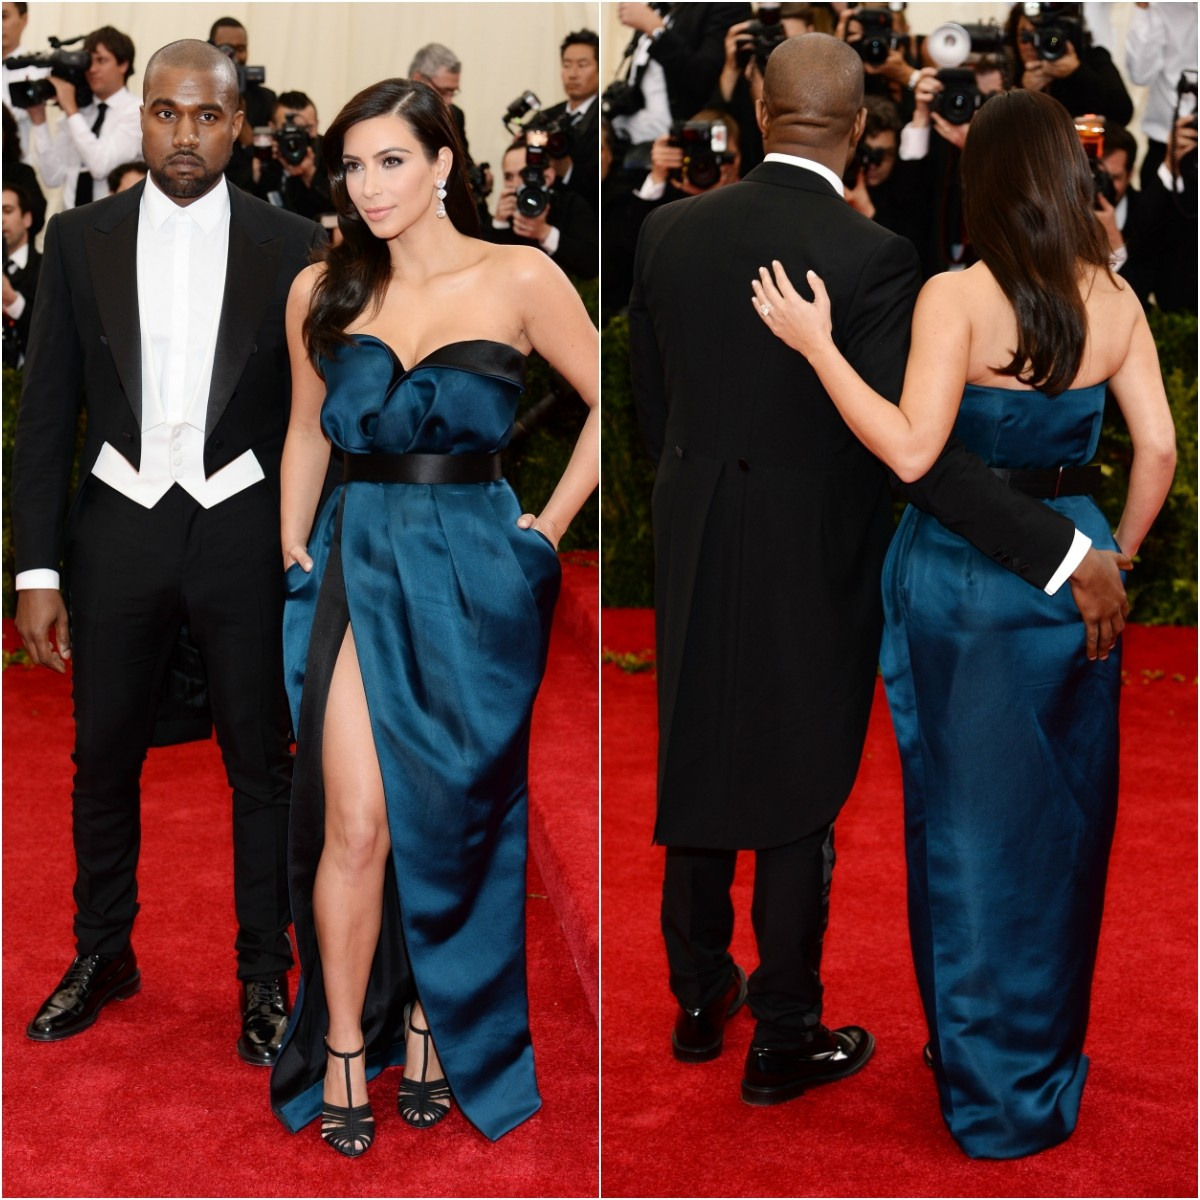 A socialite Kim Kardashian e o rapper Kanye West no MET Gala 2014. (Foto: Getty Images)